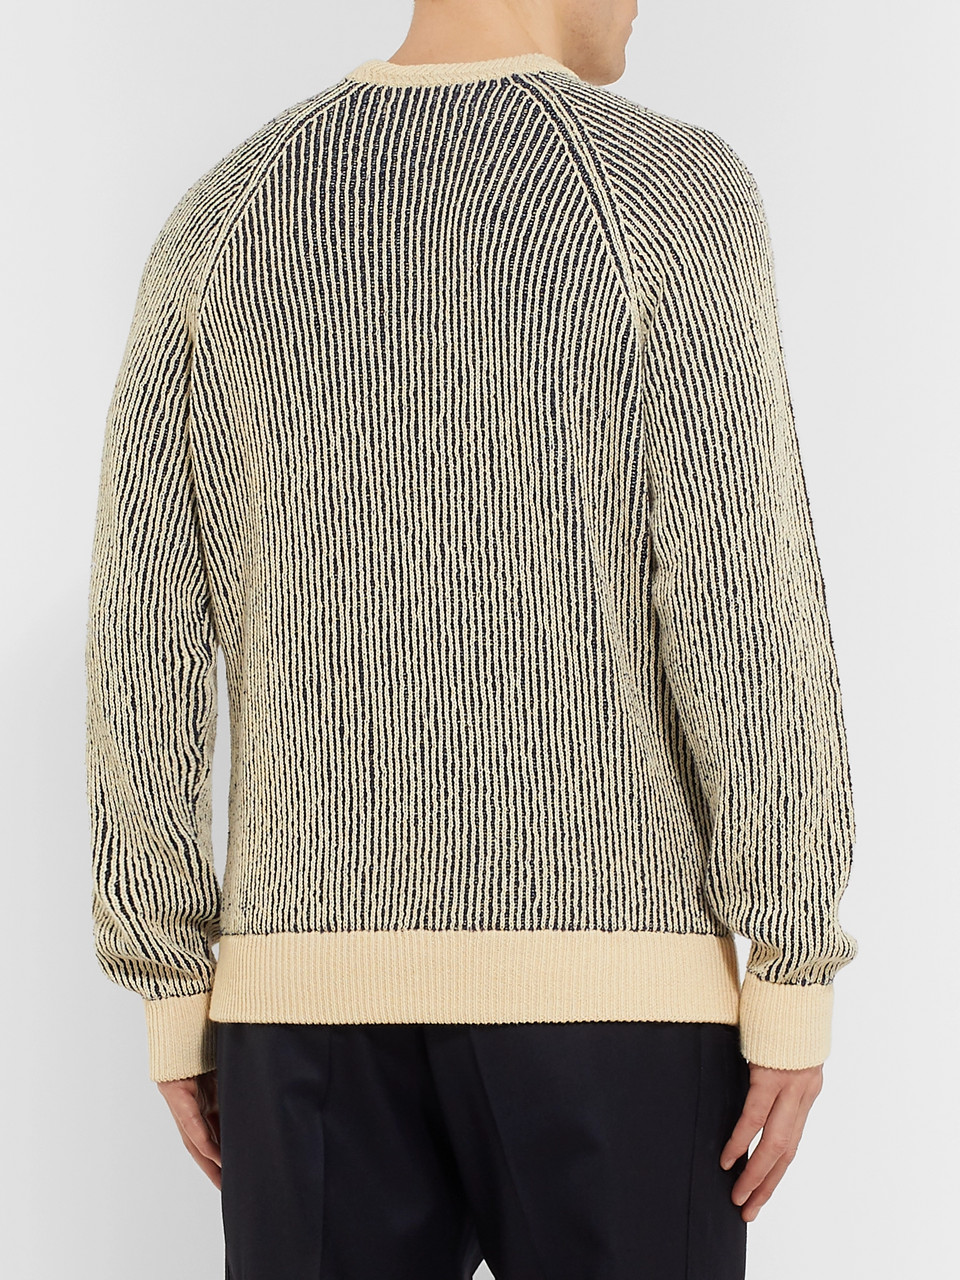 Mr P. Striped Ribbed Cotton-Blend Sweater